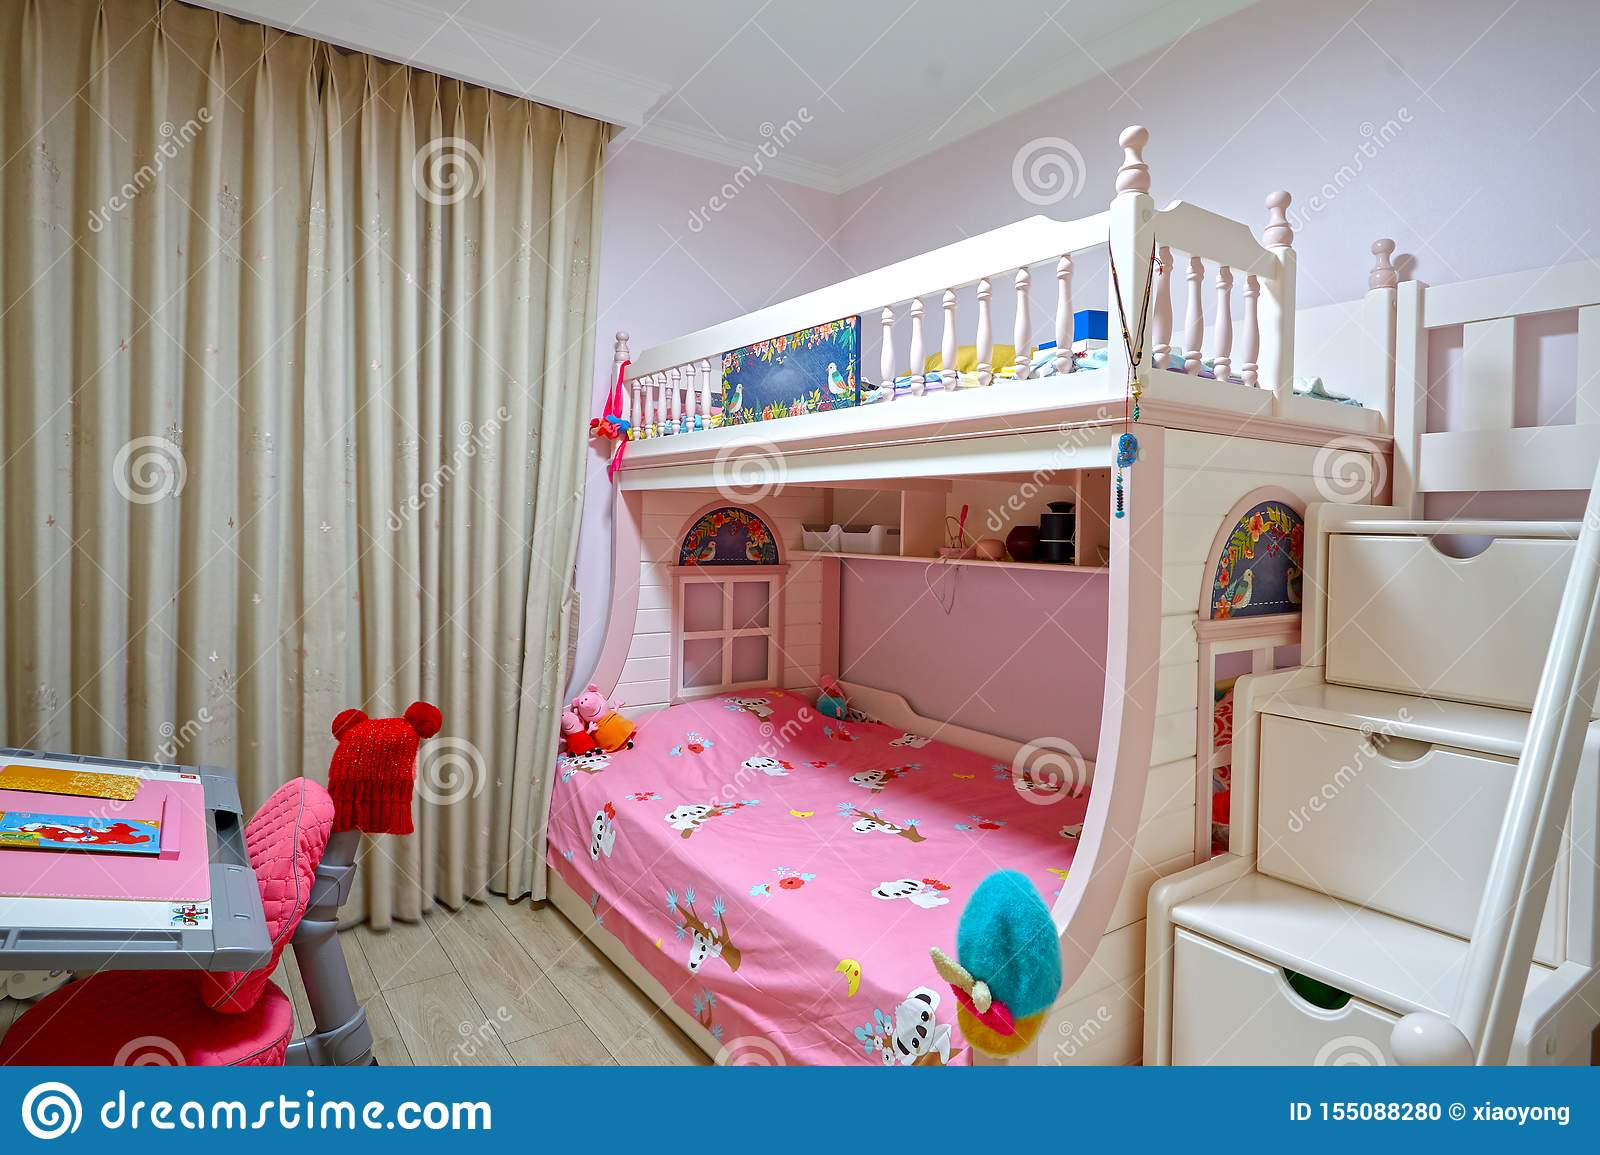 Picture of: 363 Wall Bunk Photos Free Royalty Free Stock Photos From Dreamstime